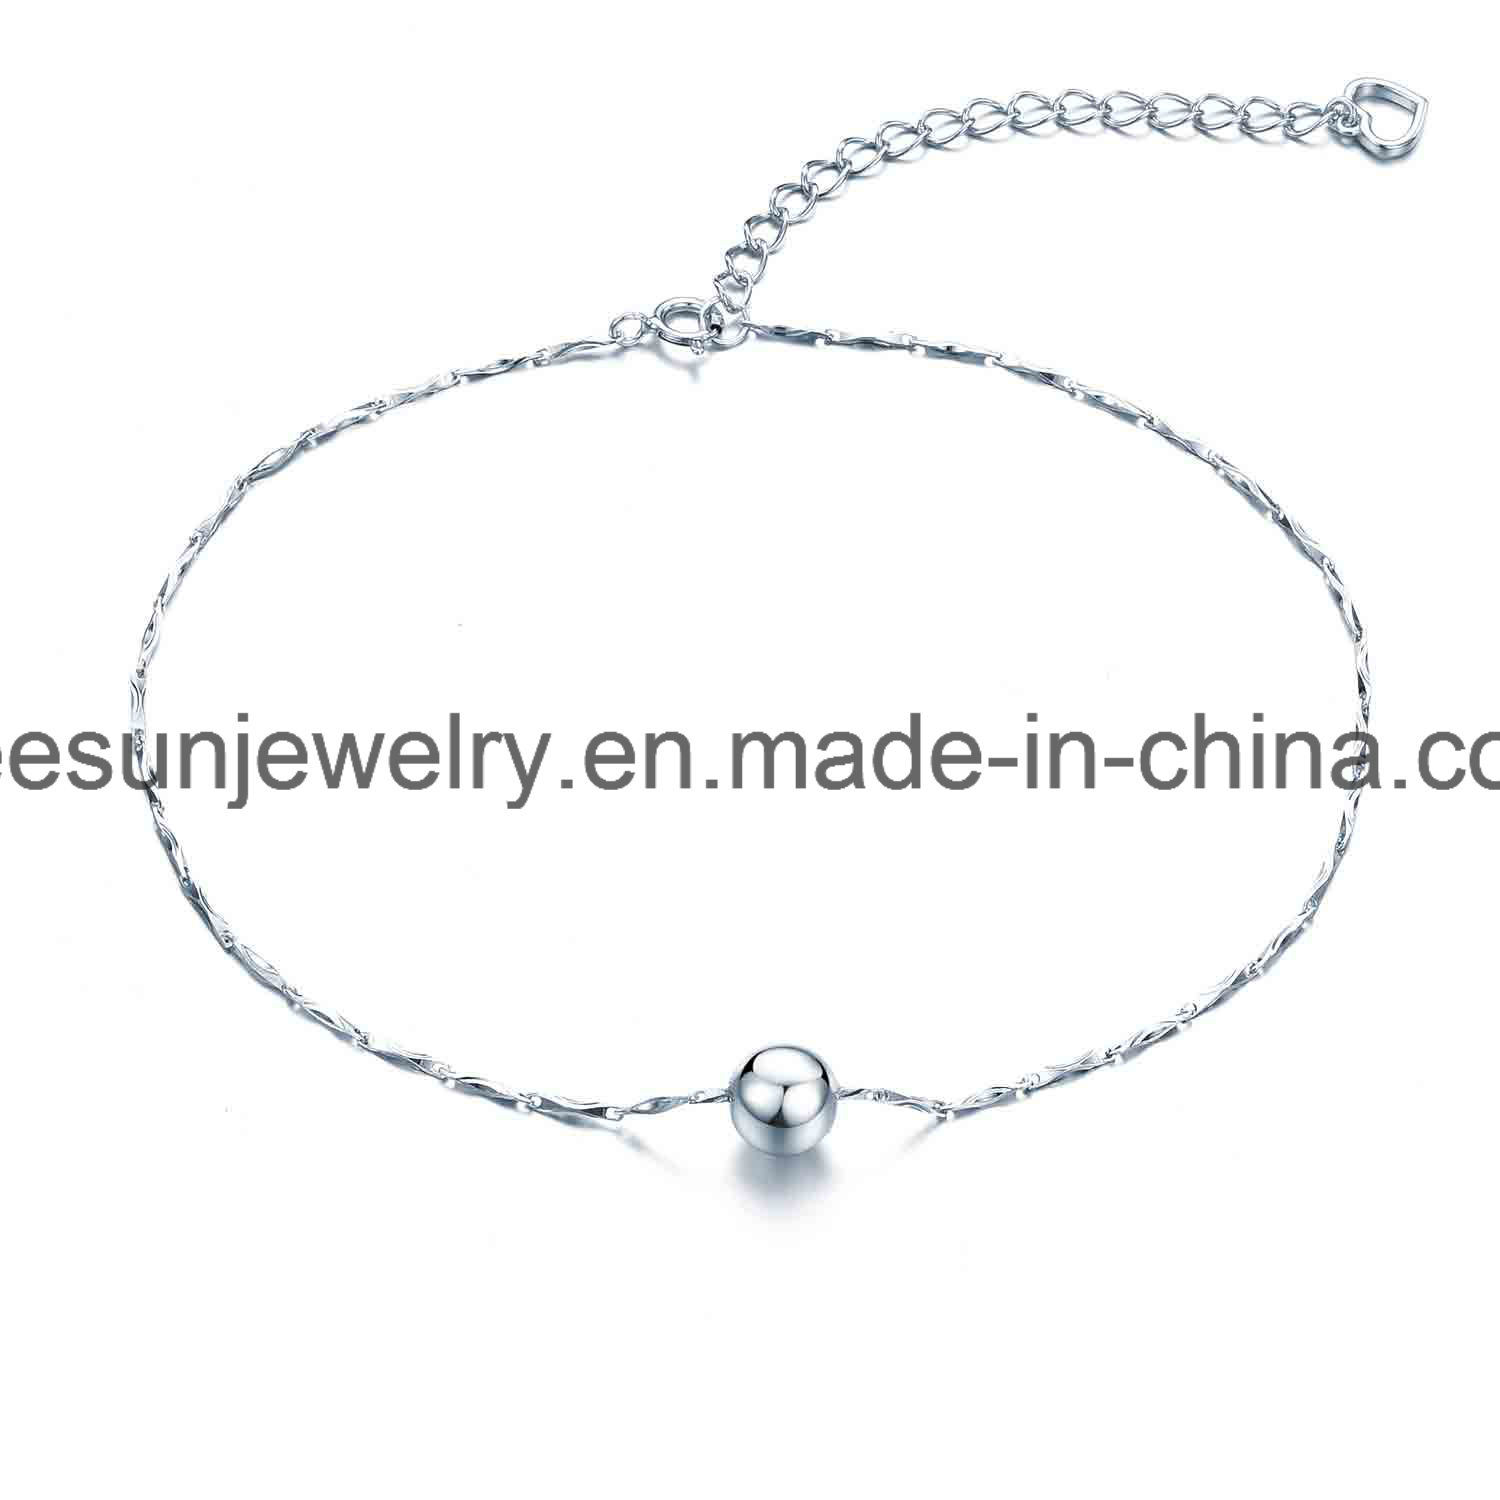 925 Sterling Silver Jewelry Light Weight Good Selling Bracelet and Anklet